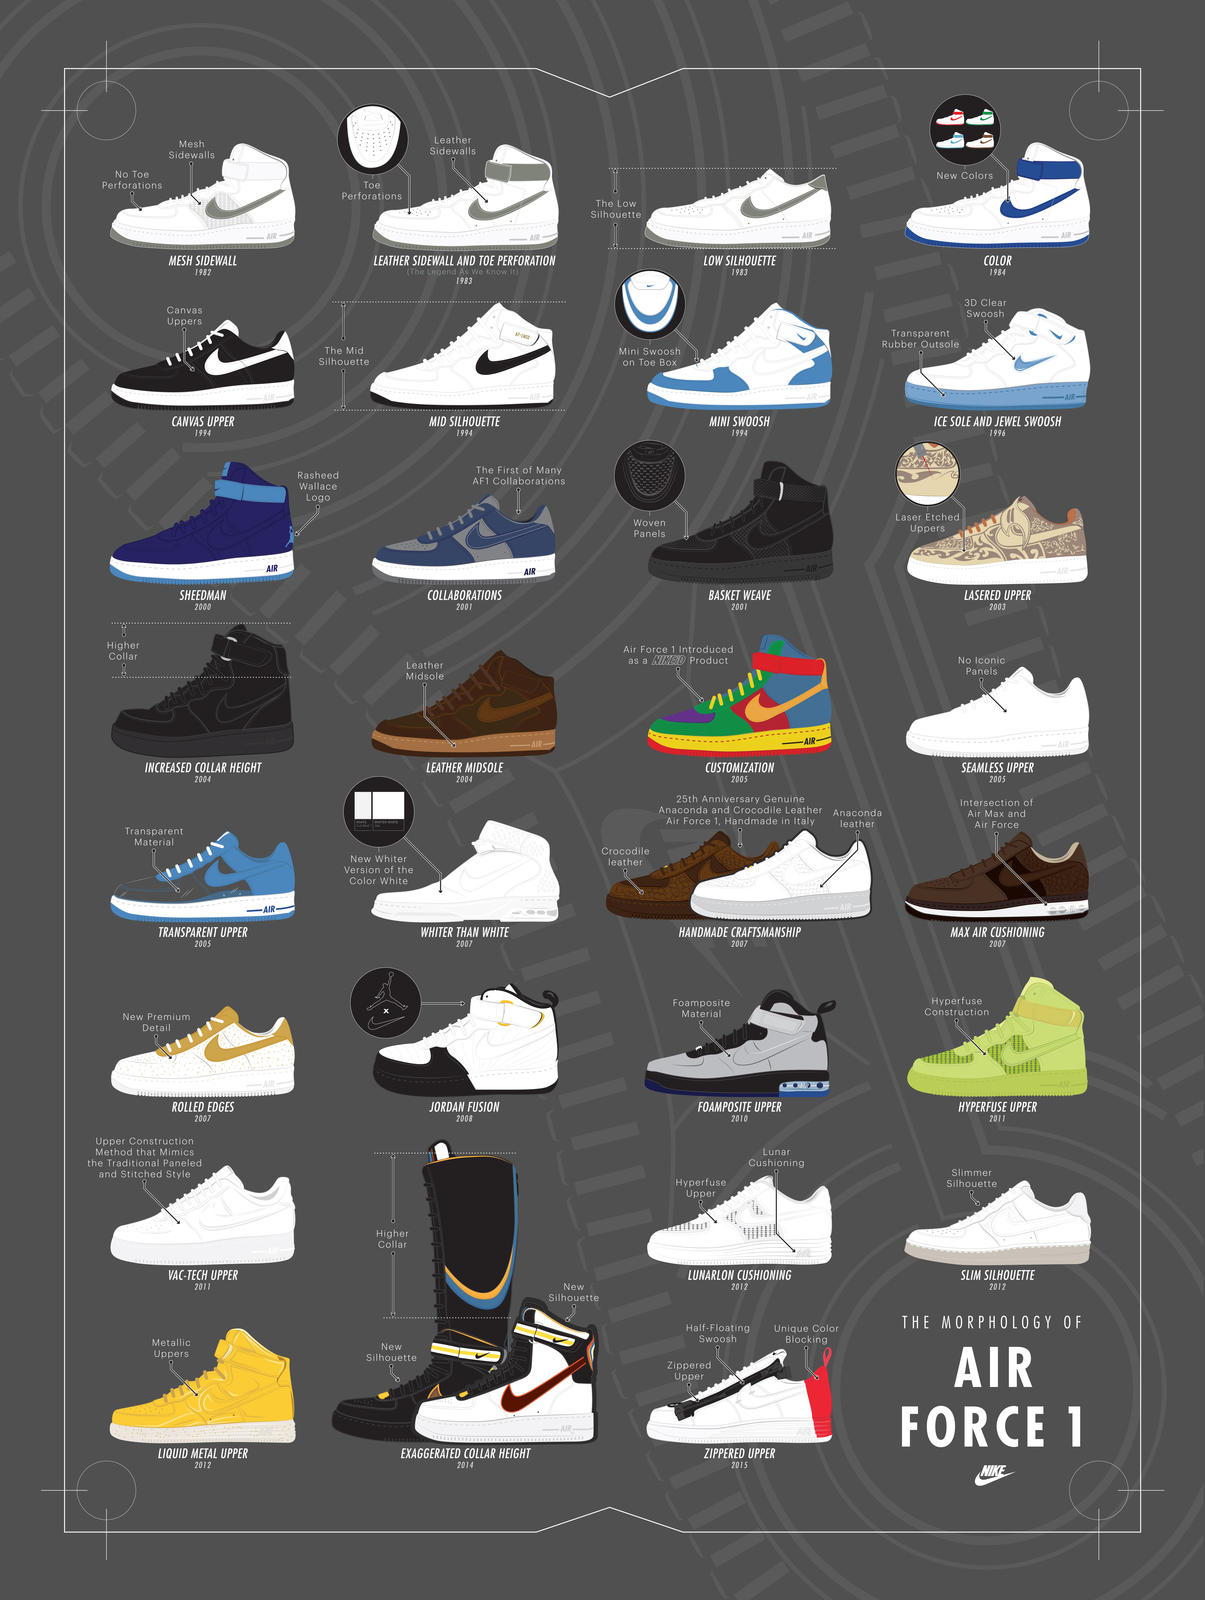 Nike Morphology of Air Force 1 - Poster